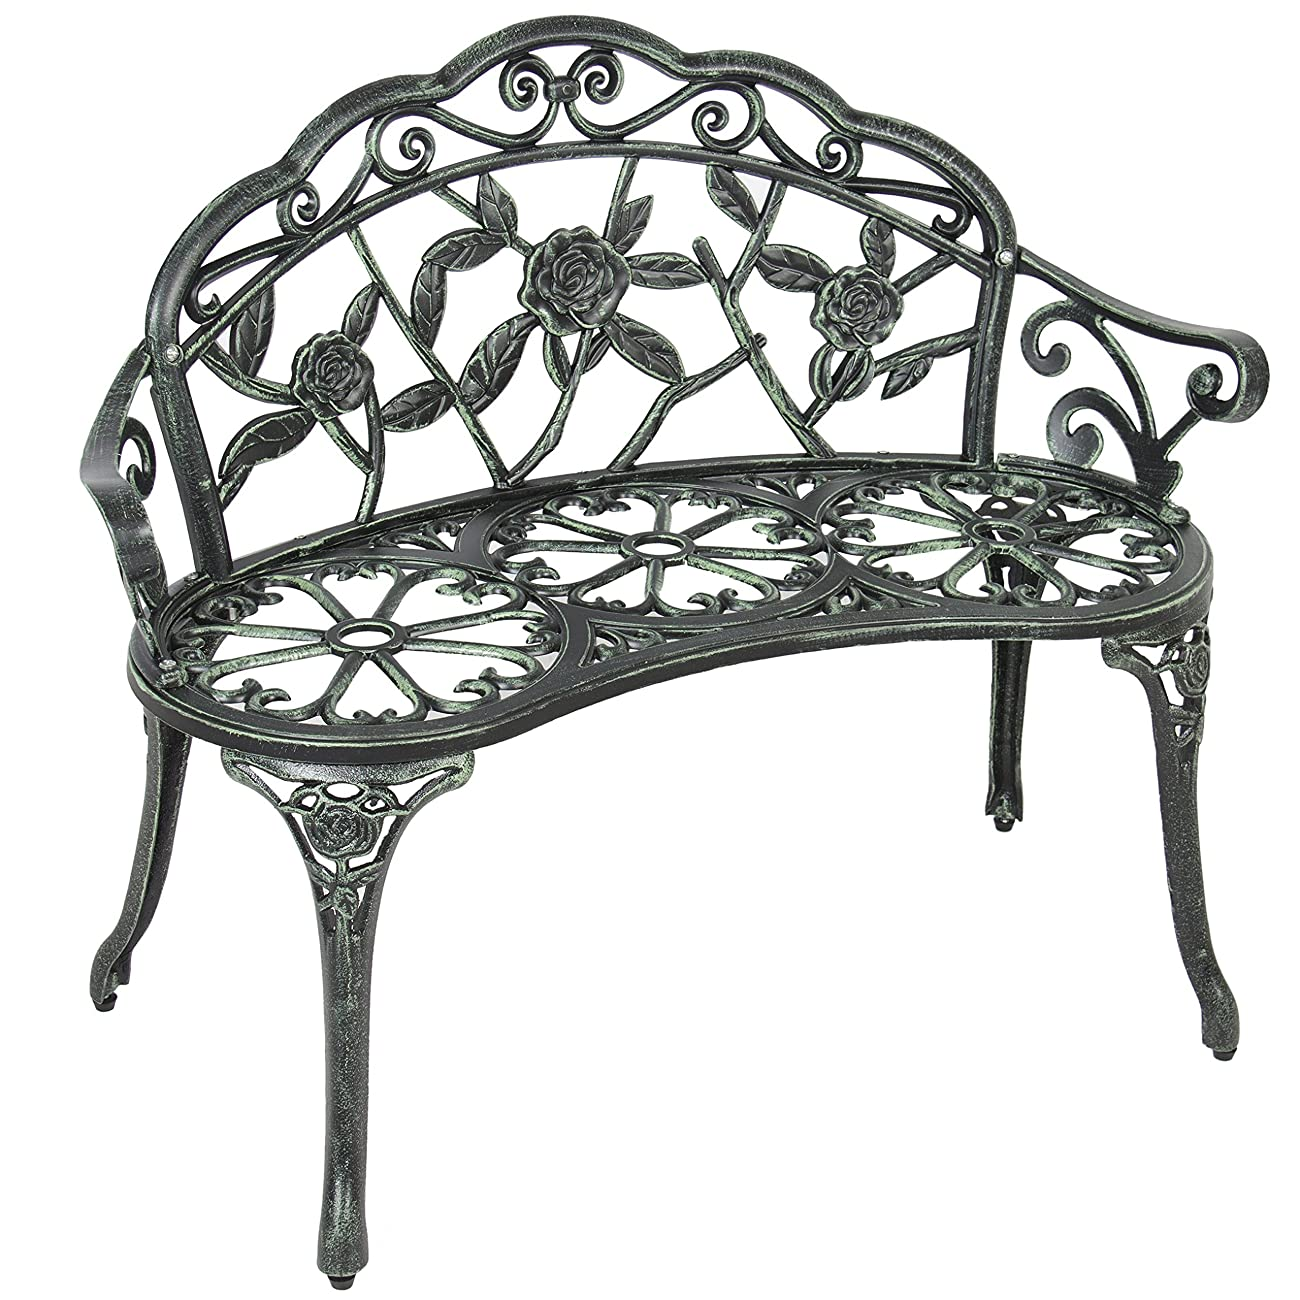 Best Choice Products BCP Outdoor Patio Garden Bench Cast Iron Antique Rose Backyard Porch Furniture 1